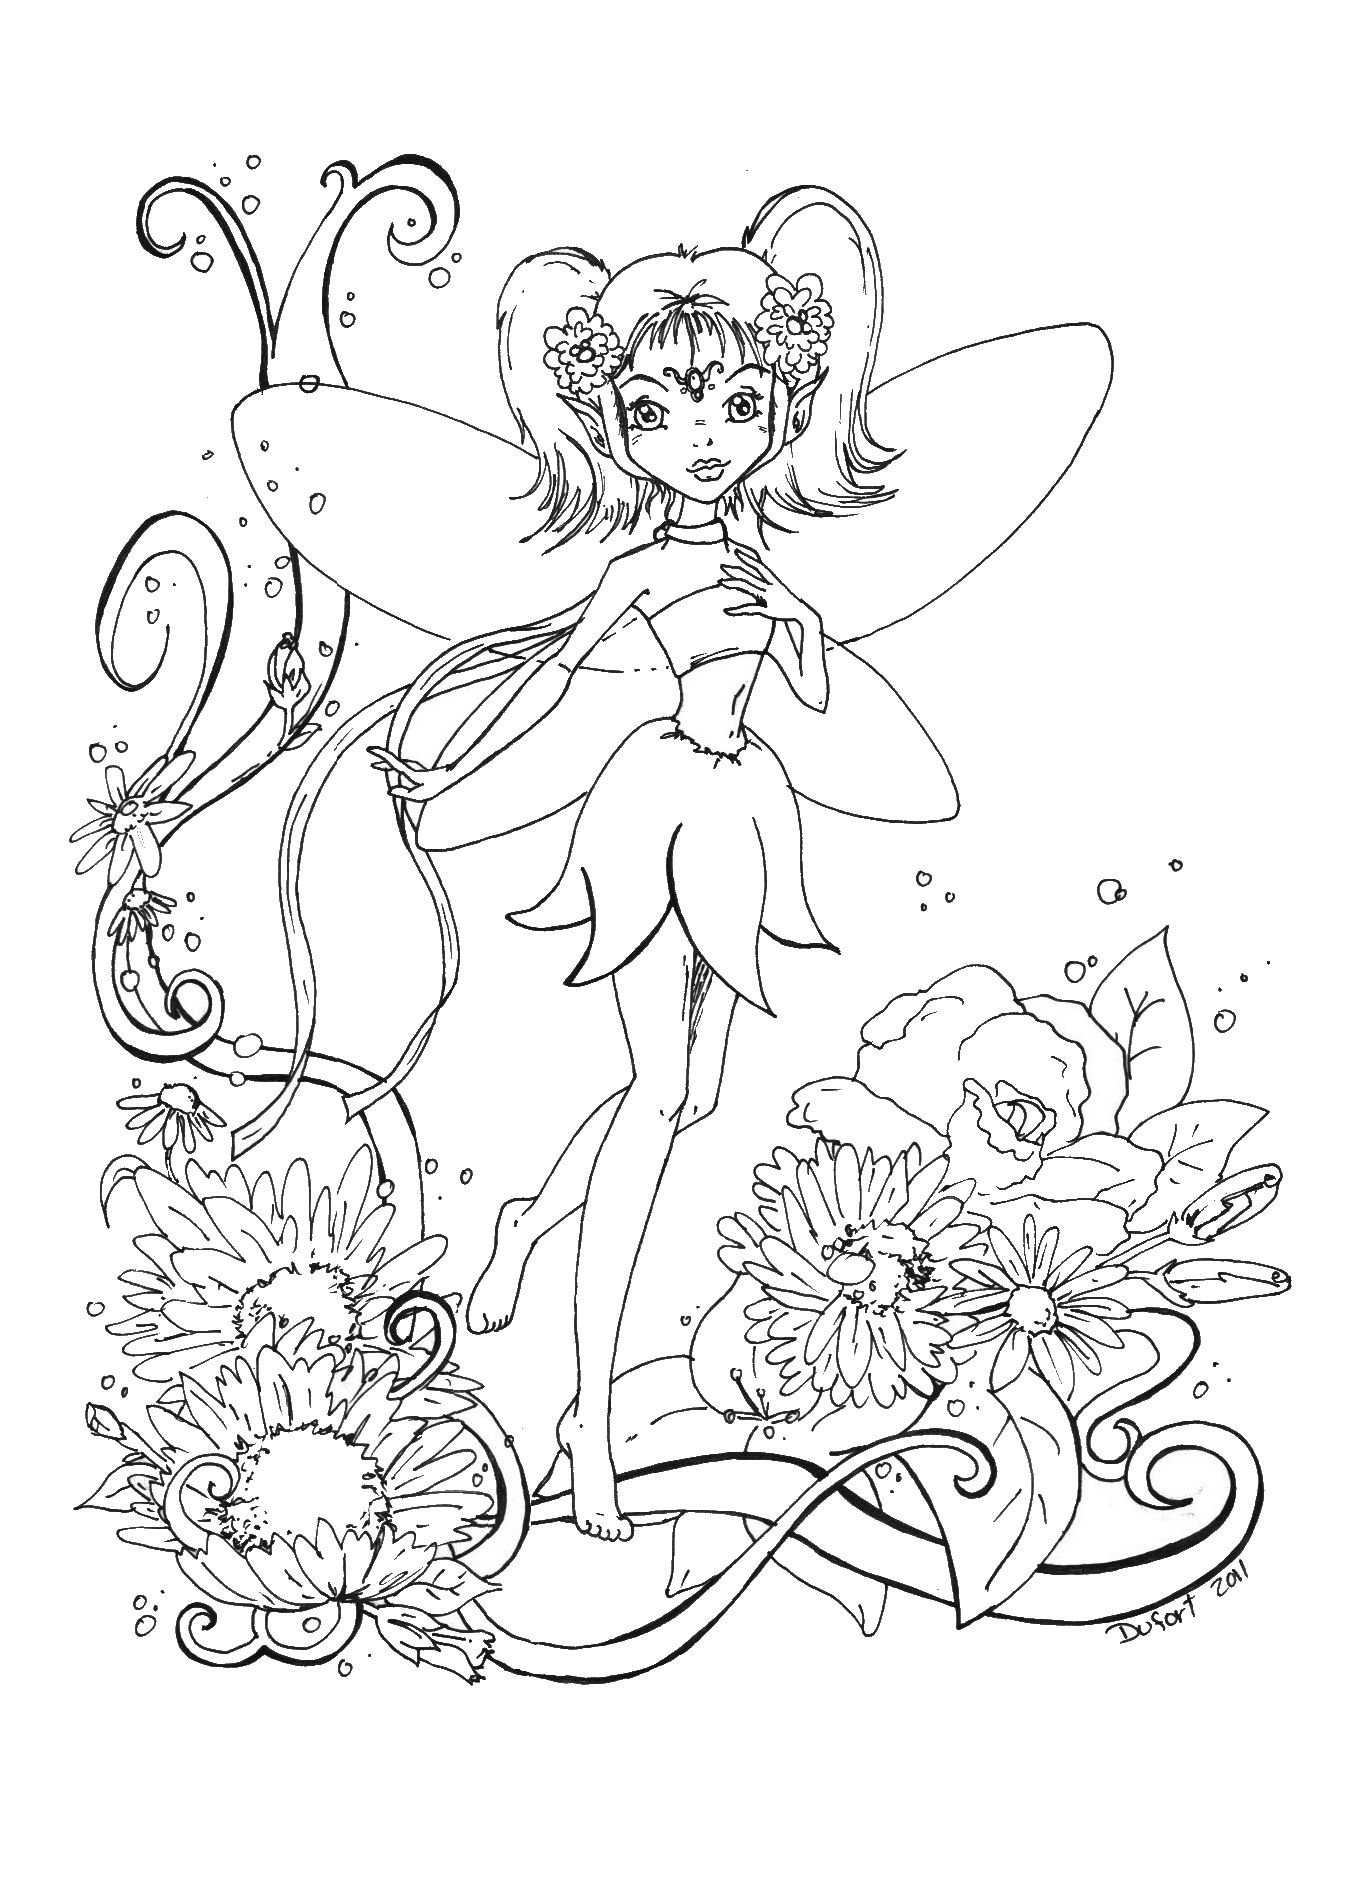 rainbow magic fairy coloring pages rainbow magic special edition brianna the tooth fairy magic rainbow fairy coloring pages